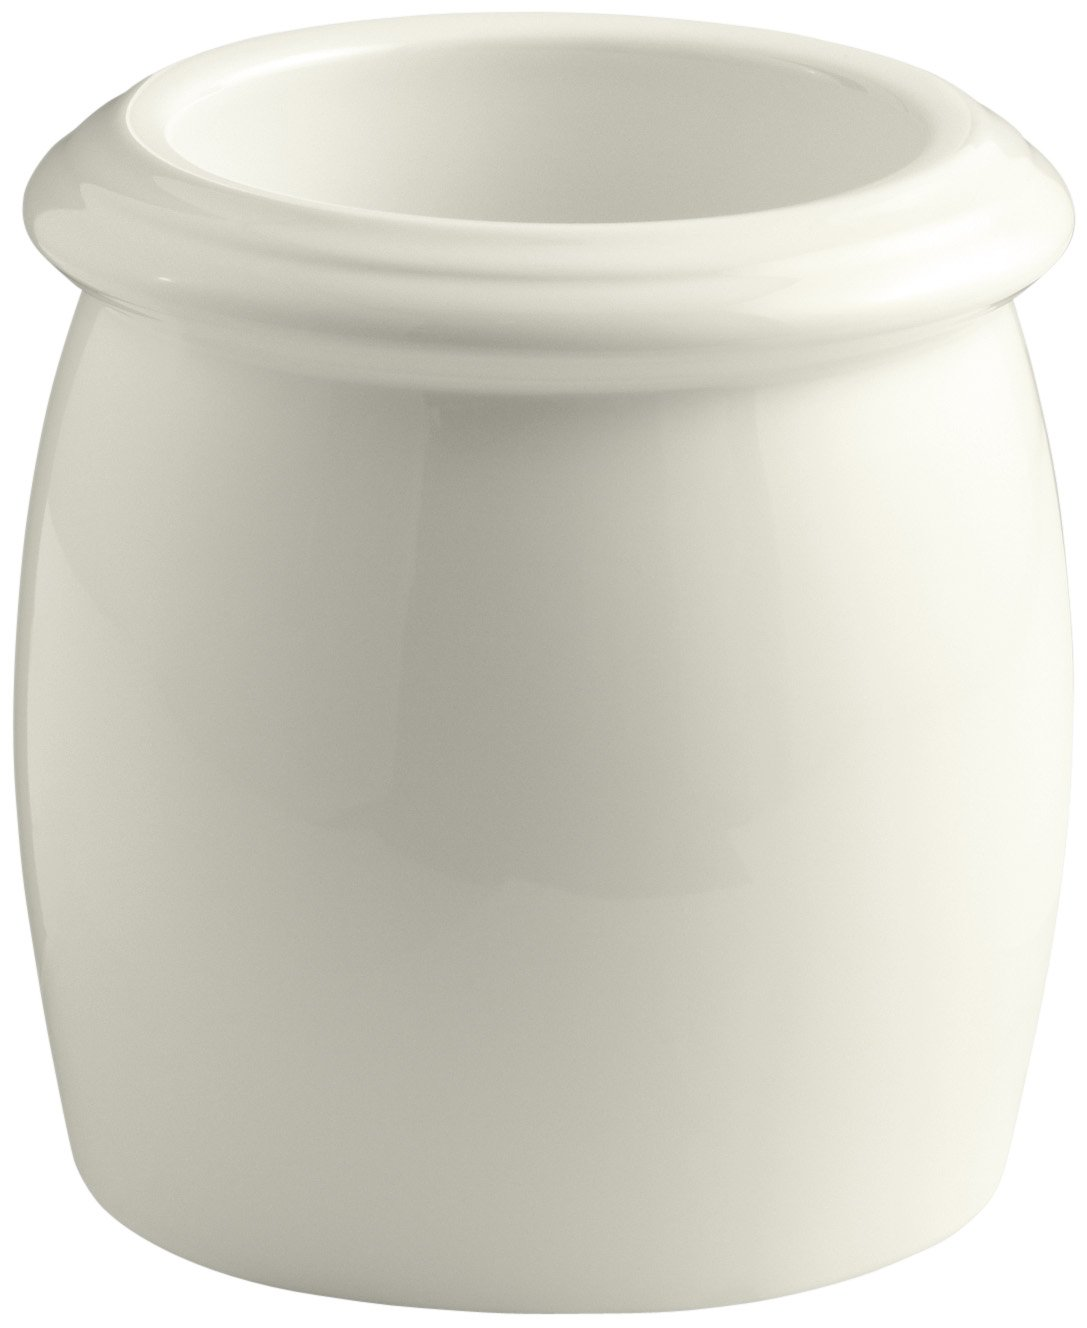 KOHLER K-10517-96 Floor Container, Biscuit